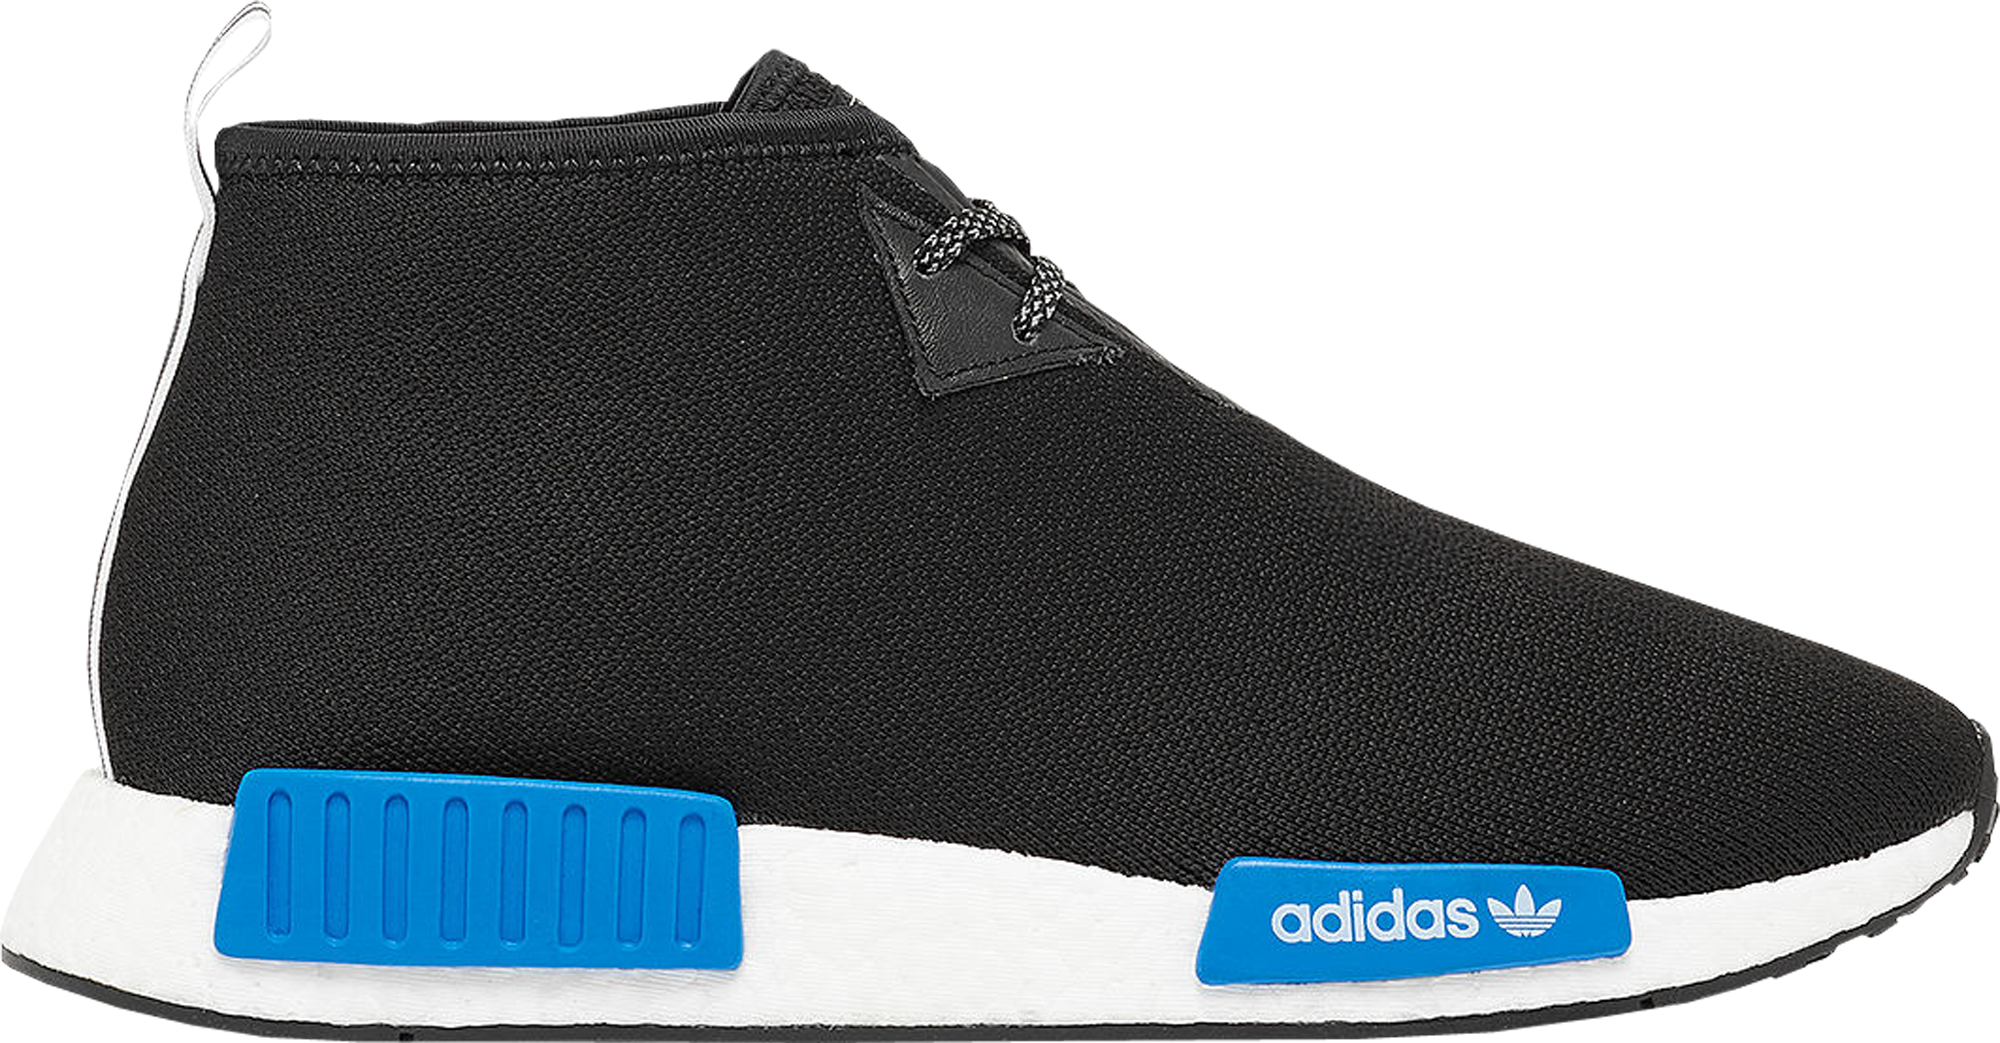 adidas NMD C1 Original Boost Chukka Lush Red Limited Online